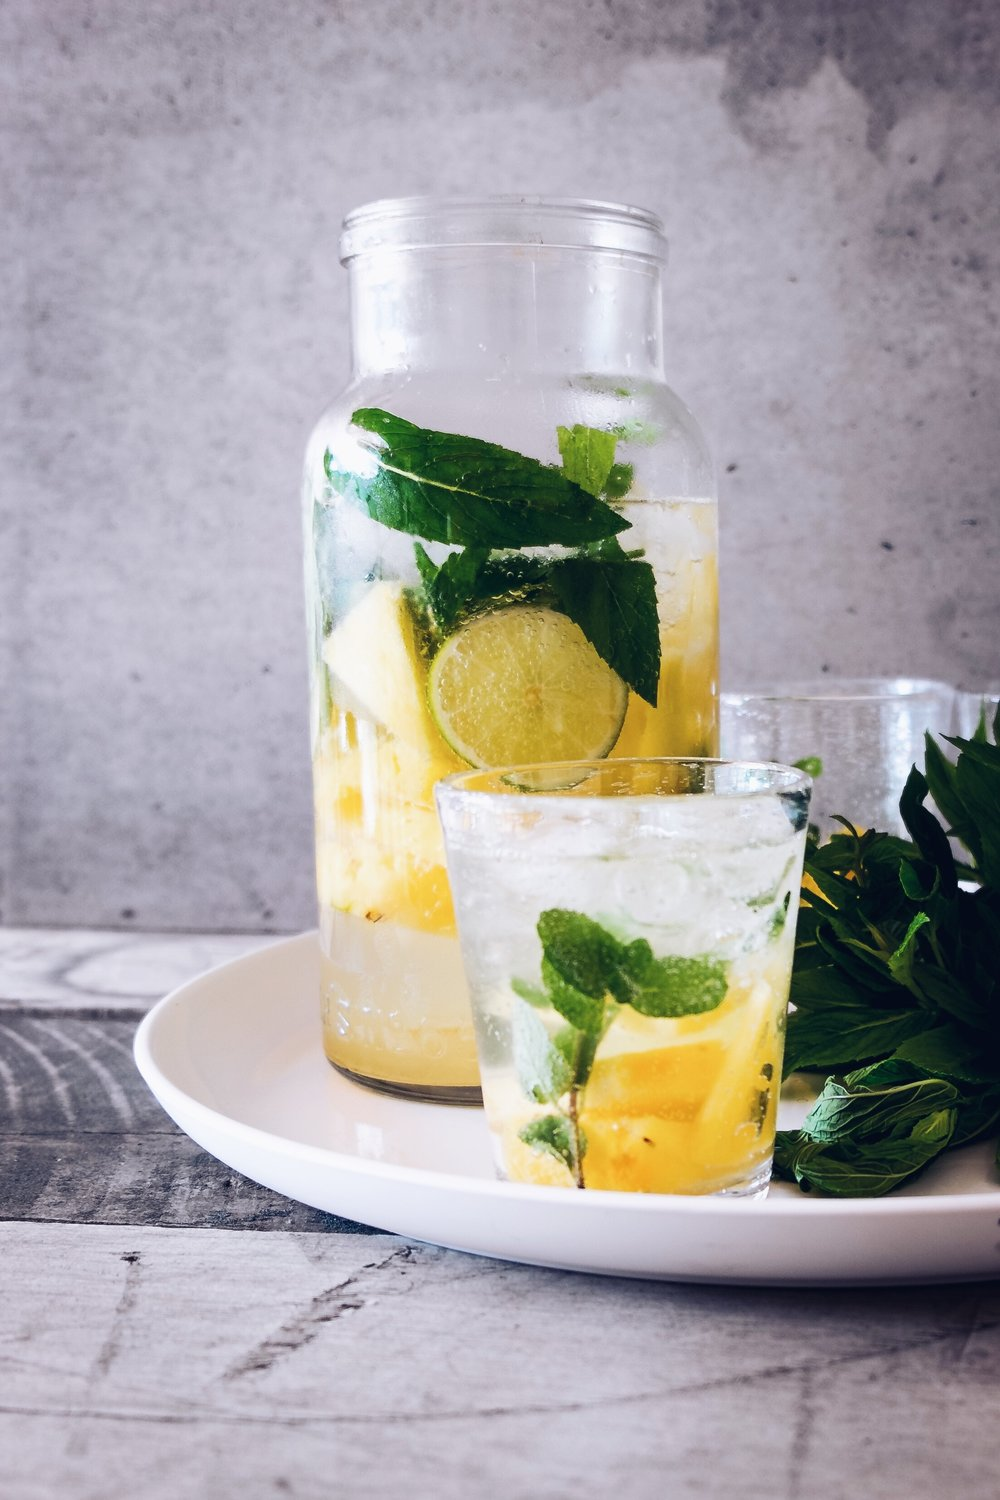 You can add a cup of lime or lemon juice to add some variation in your drink.